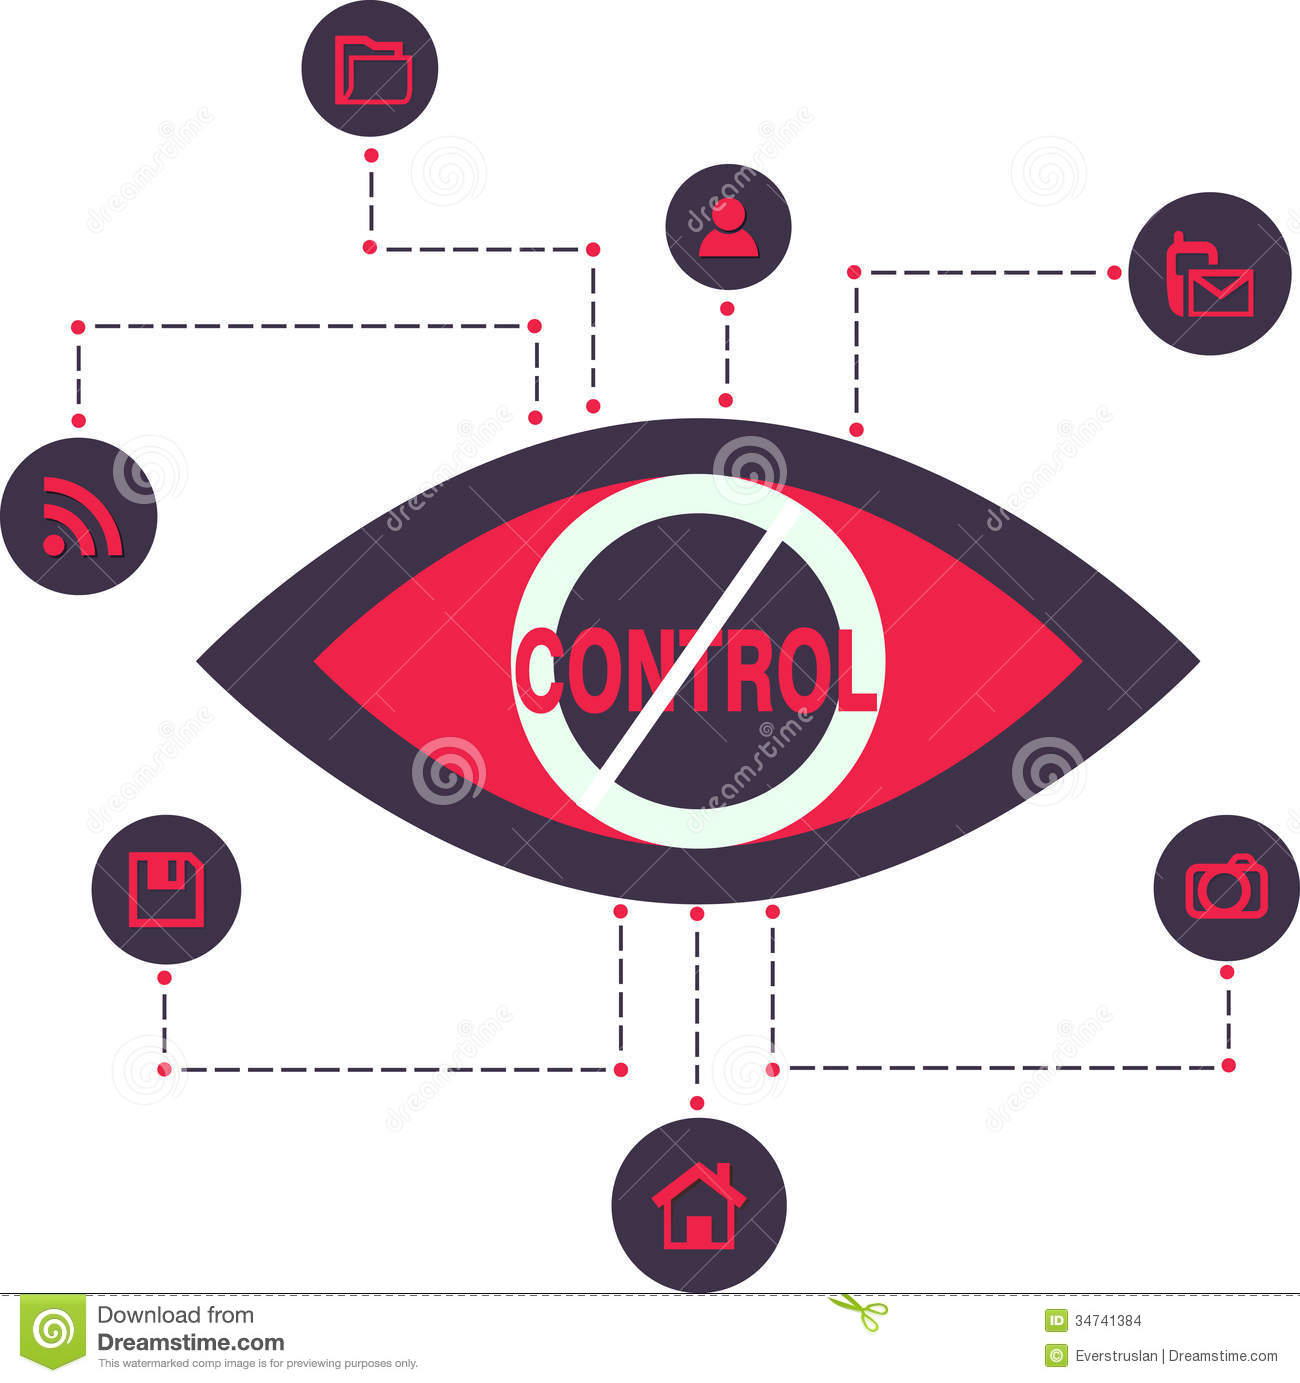 surveillance technology A growing number of businesses are using tech to monitor what you do, and even where you go, on company time.